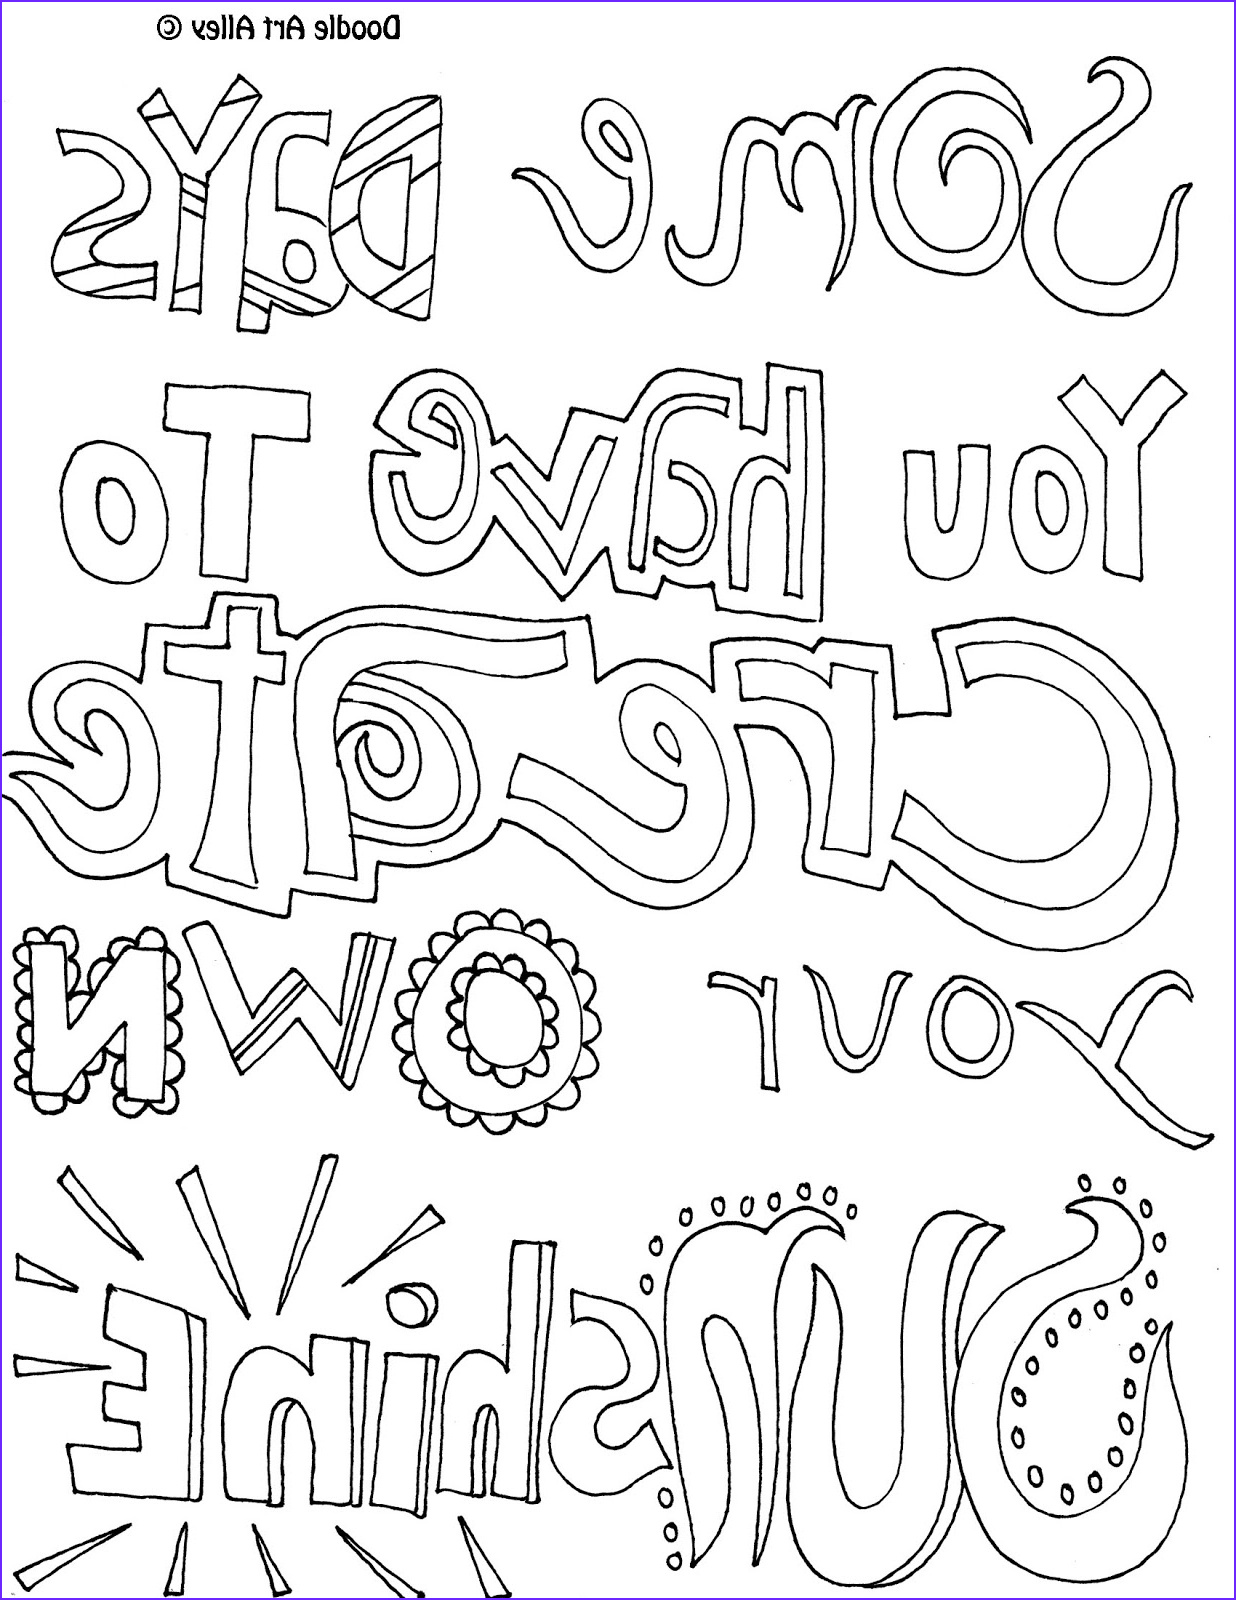 Motivational Coloring Pages Inspirational Photos Positive Quotes Coloring Pages Quotesgram